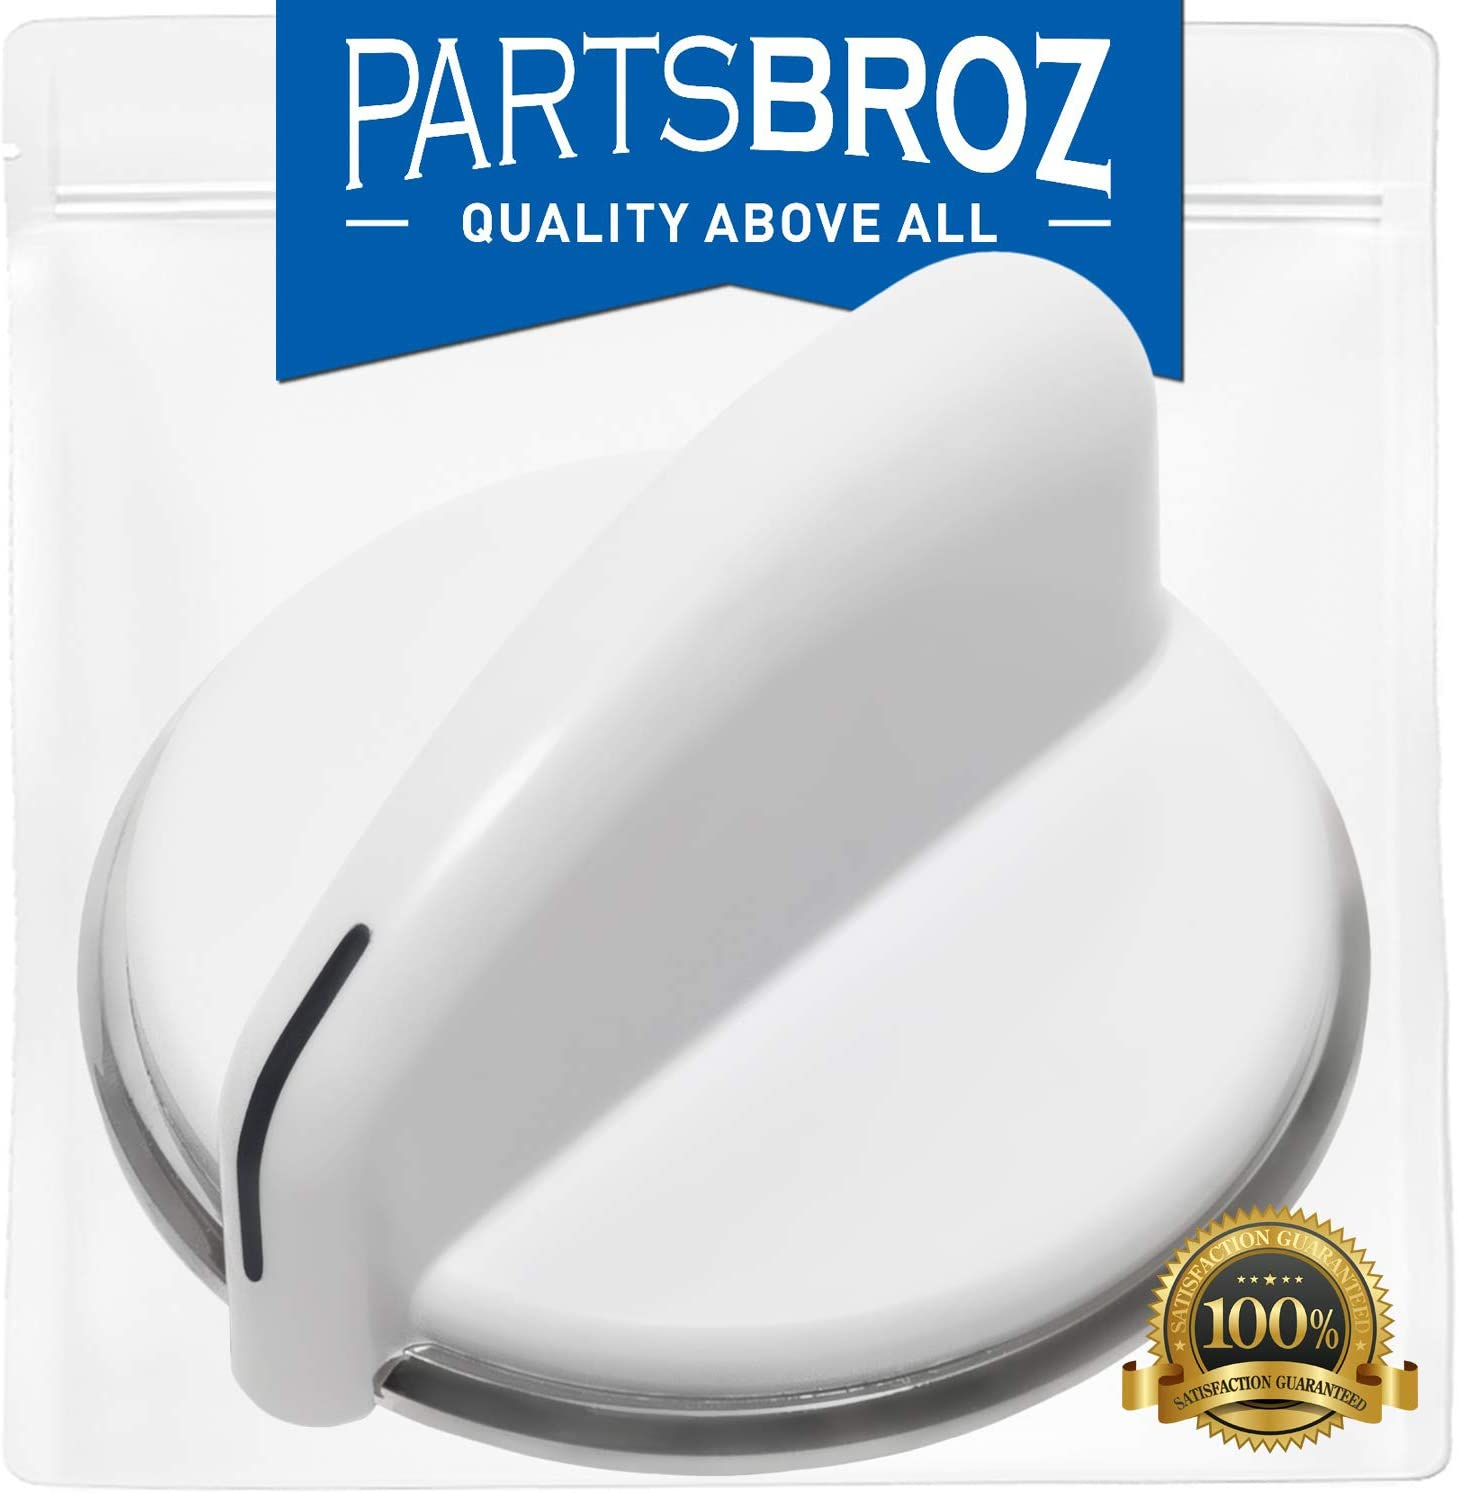 WE01X20380 Washer Control Knob for General Electric Washers & Dryers by PartsBroz - Replaces Part Numbers AP5805162, WE1M1034, 3198207 & PS8769914